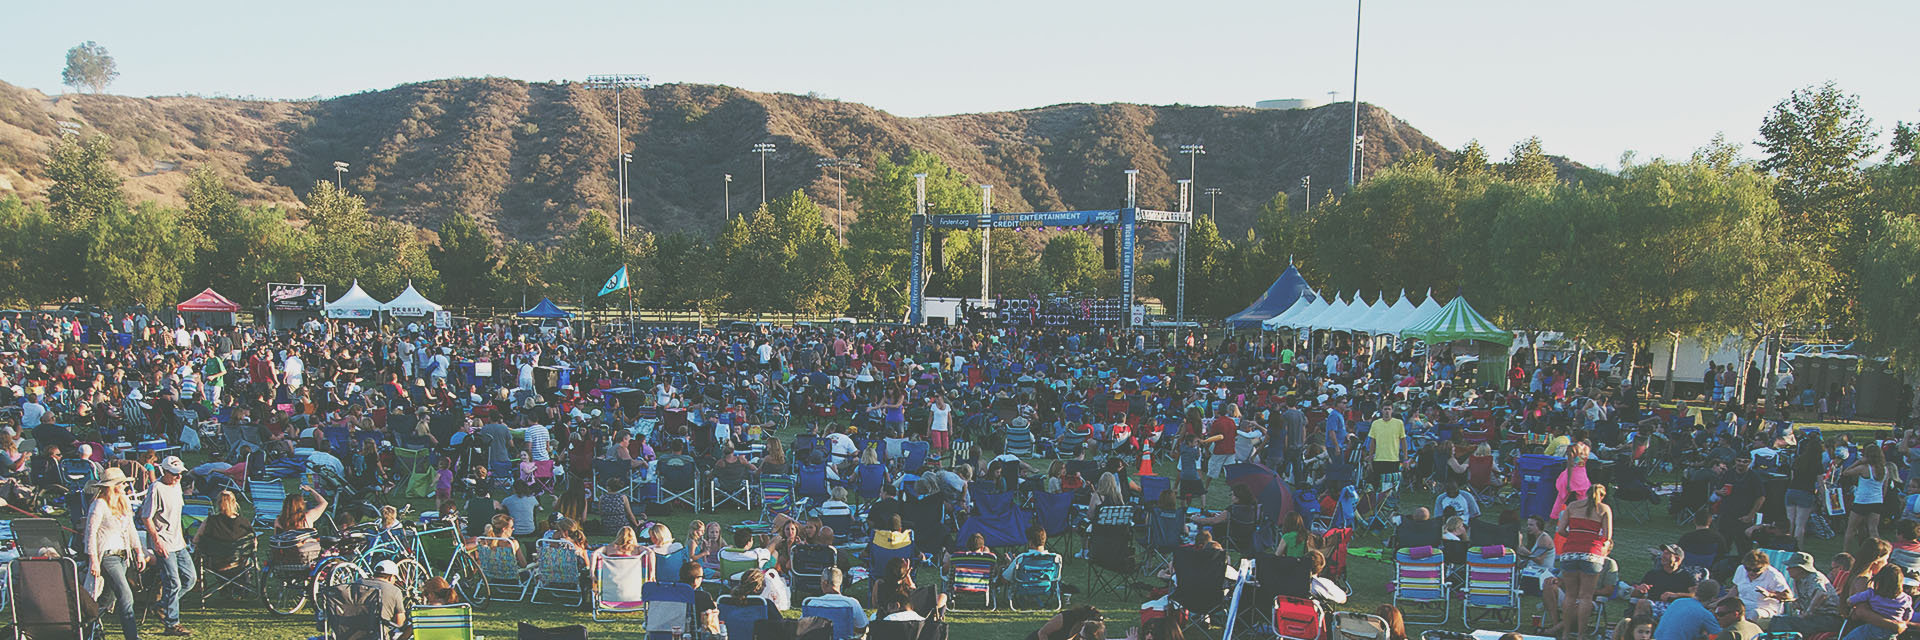 Concert at the City of Santa Clarita